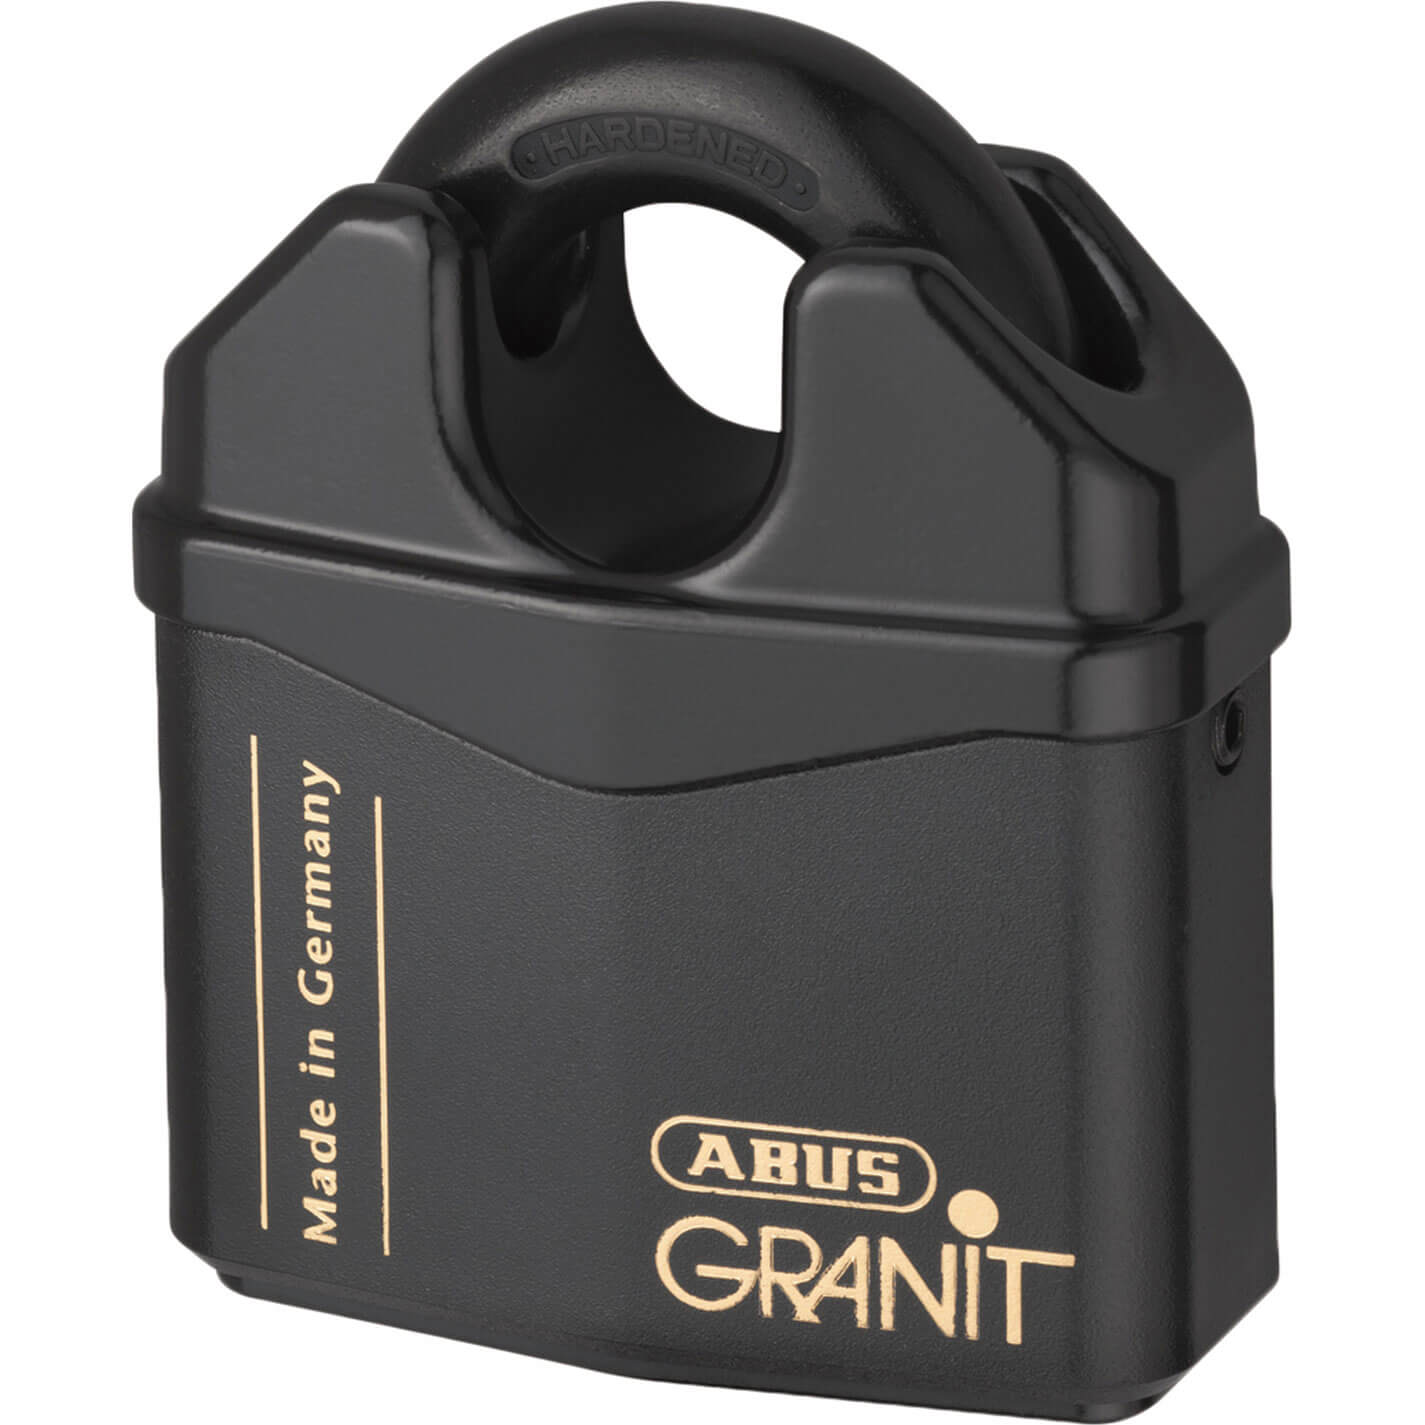 Abus 80mm Close Shackle 37 Series Granit Hardened Steel Padlock Keyed Alike To Suite 4365623